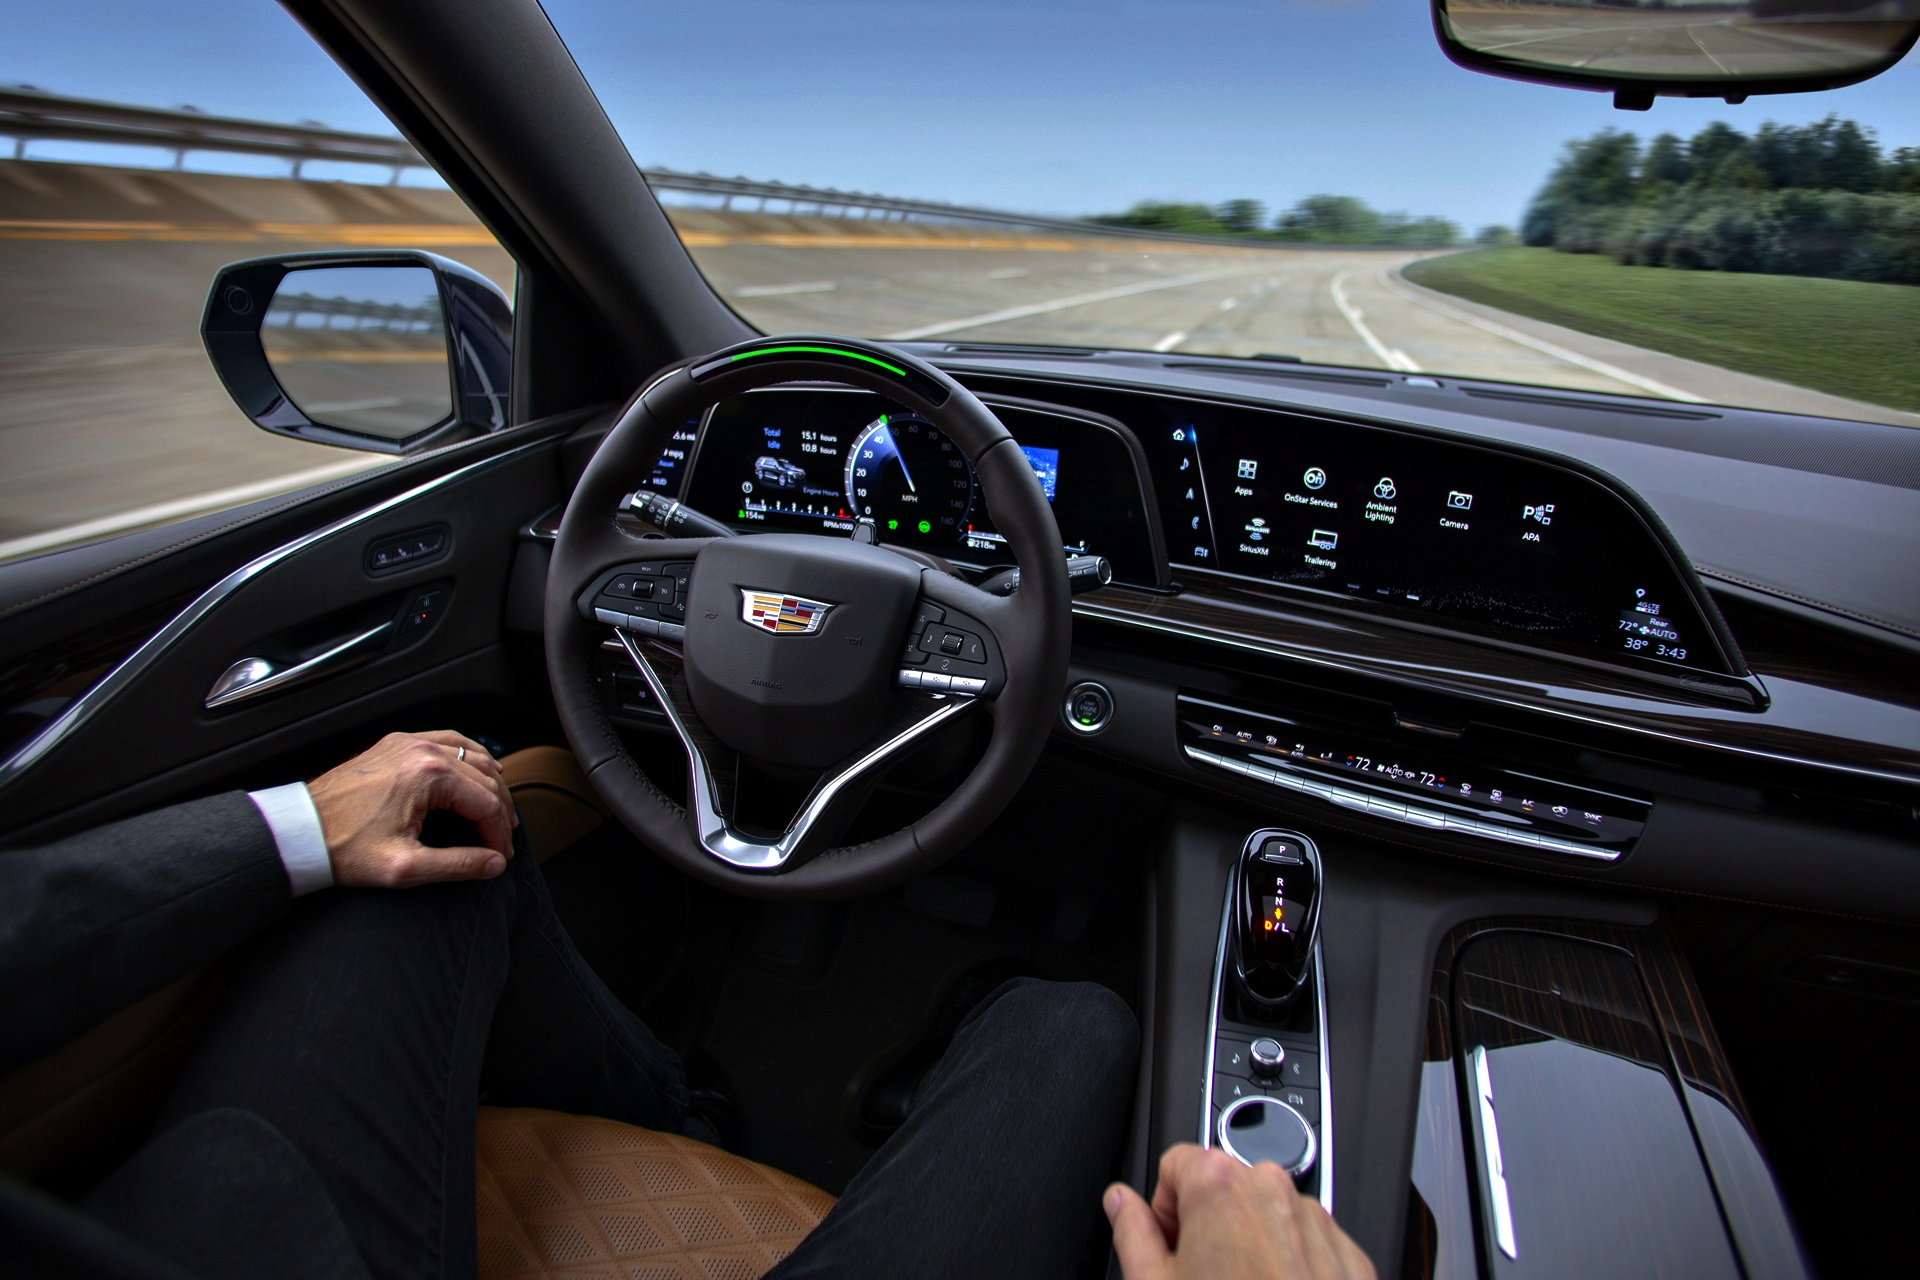 Super Cruise Enables Hands Free Driving On More Than 200,000 Mil